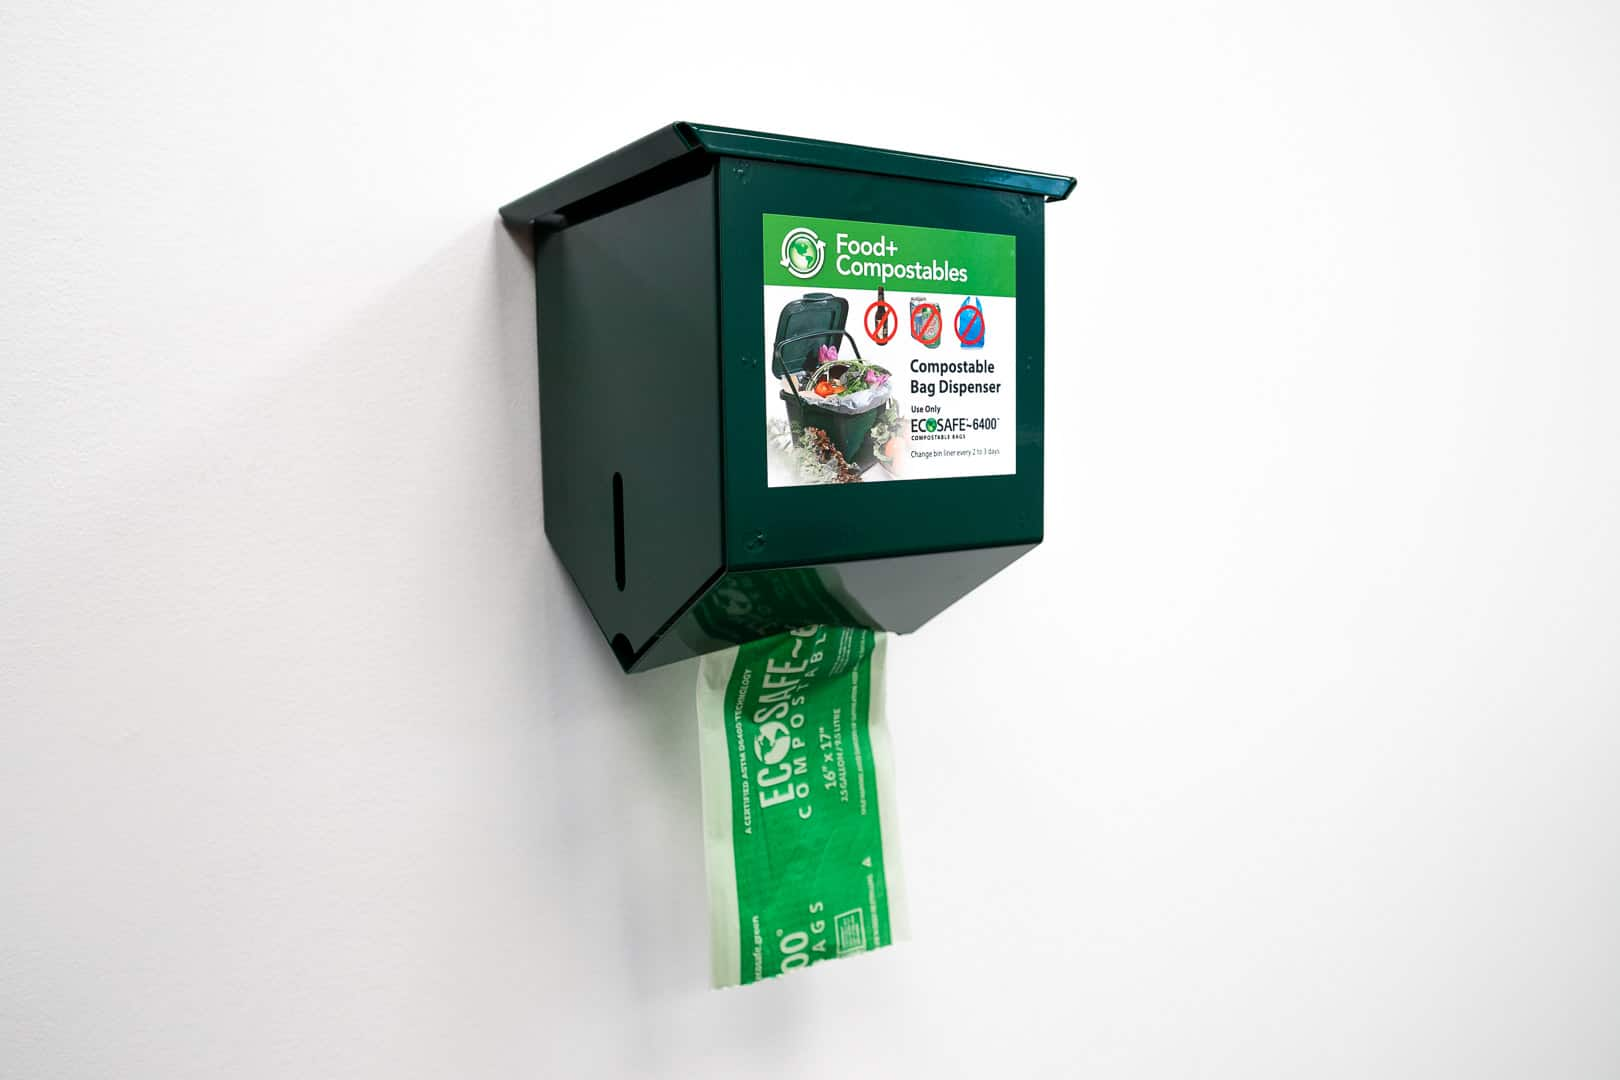 Ecosafe Green   Zero waste - compost bags